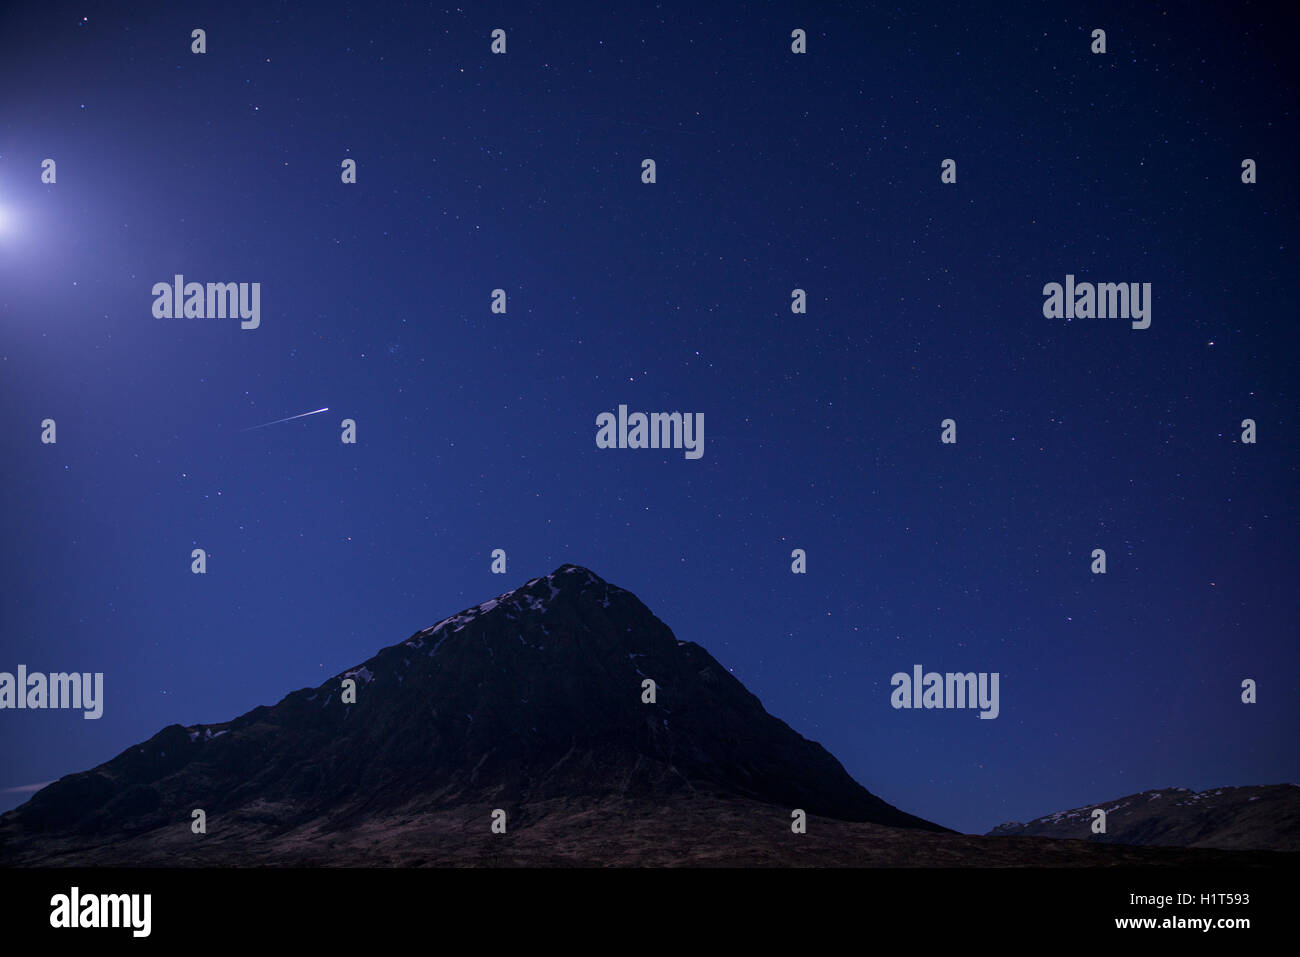 Stars with moon and shooting star - Stock Image